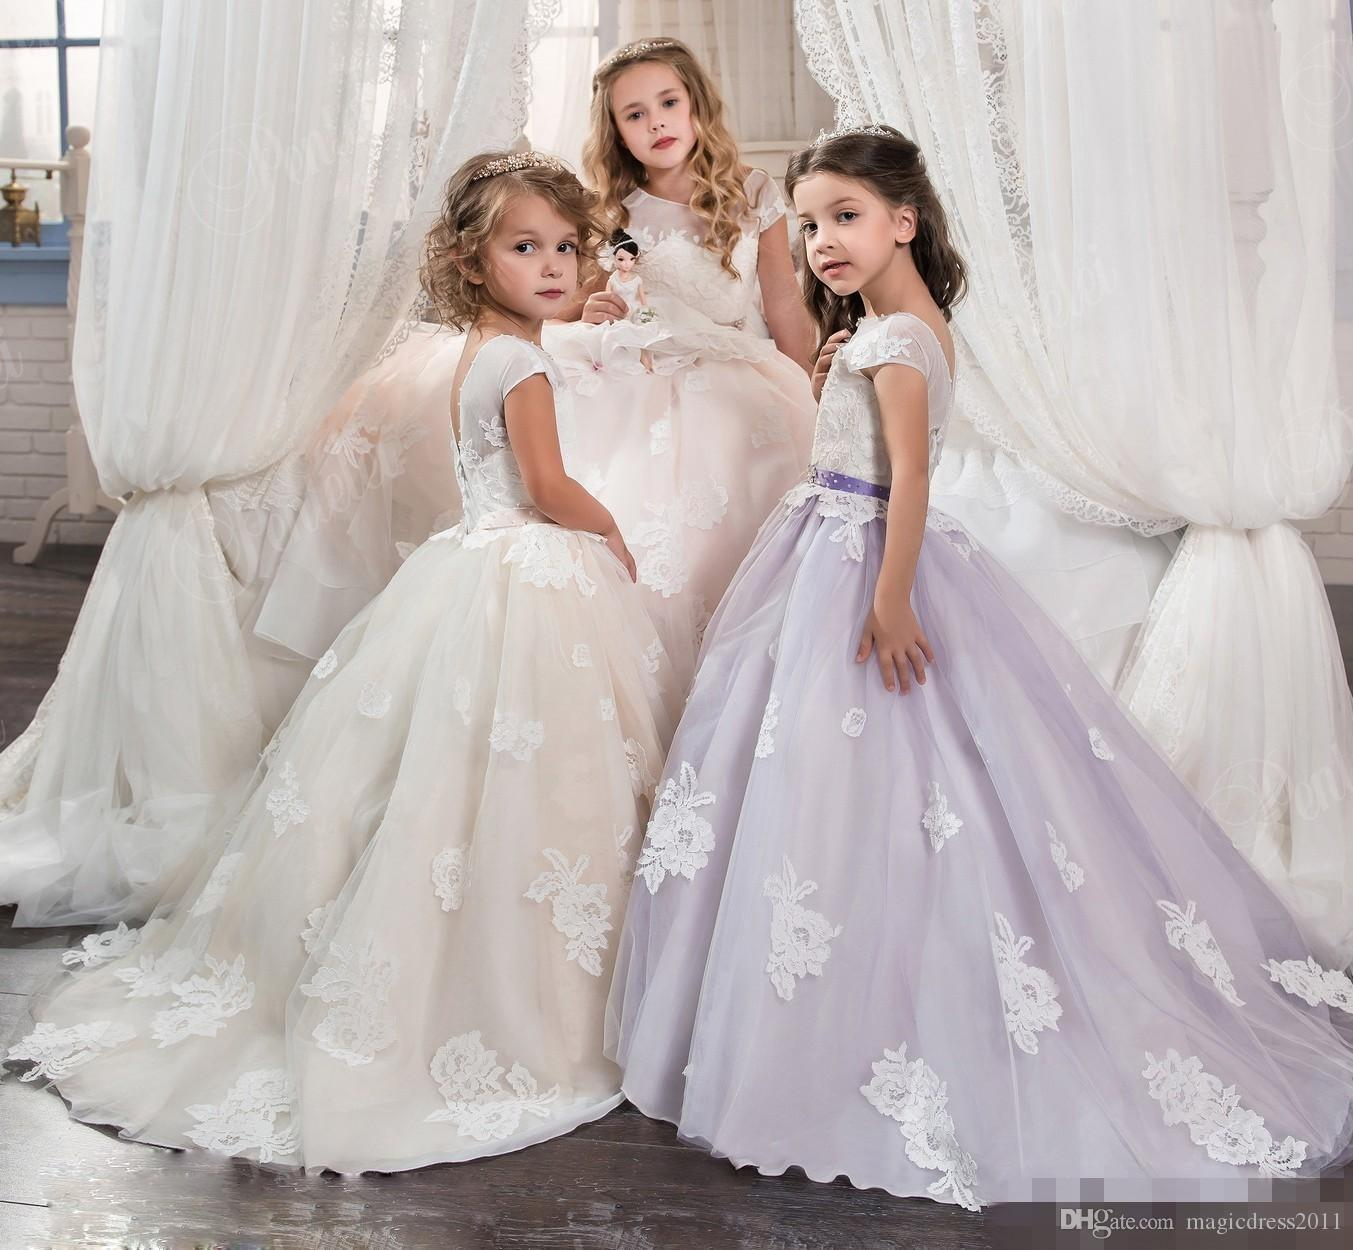 Weddings & Events Flower Girl Dresses Devoted Long Little Bride Pageant Holiday Dress For Girls Corset Kids Graduation Ball Gown Puffy Tulle Dress Prom Flower Girl Dress Pretty And Colorful